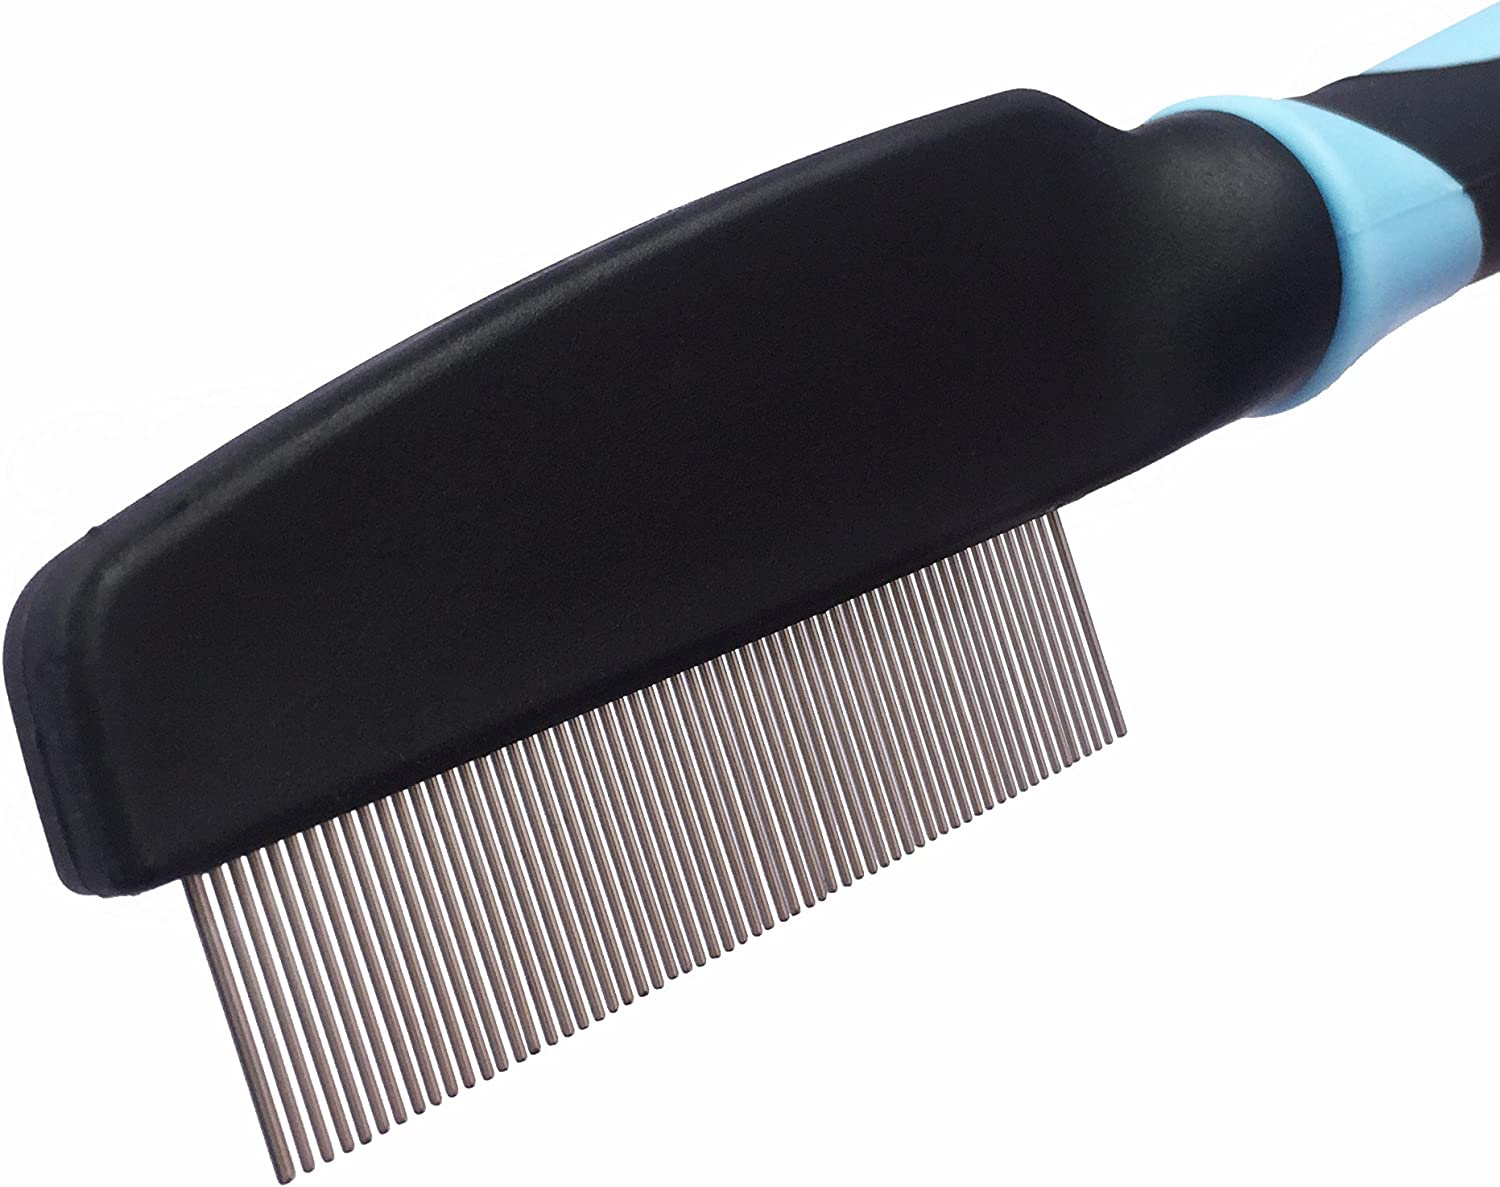 Professional Comb For Dogs and Cats /Effective against Fleas /& Lice Lice /& Dust Comb/ Flea Comb Nit Comb For Pets From VOYAGE